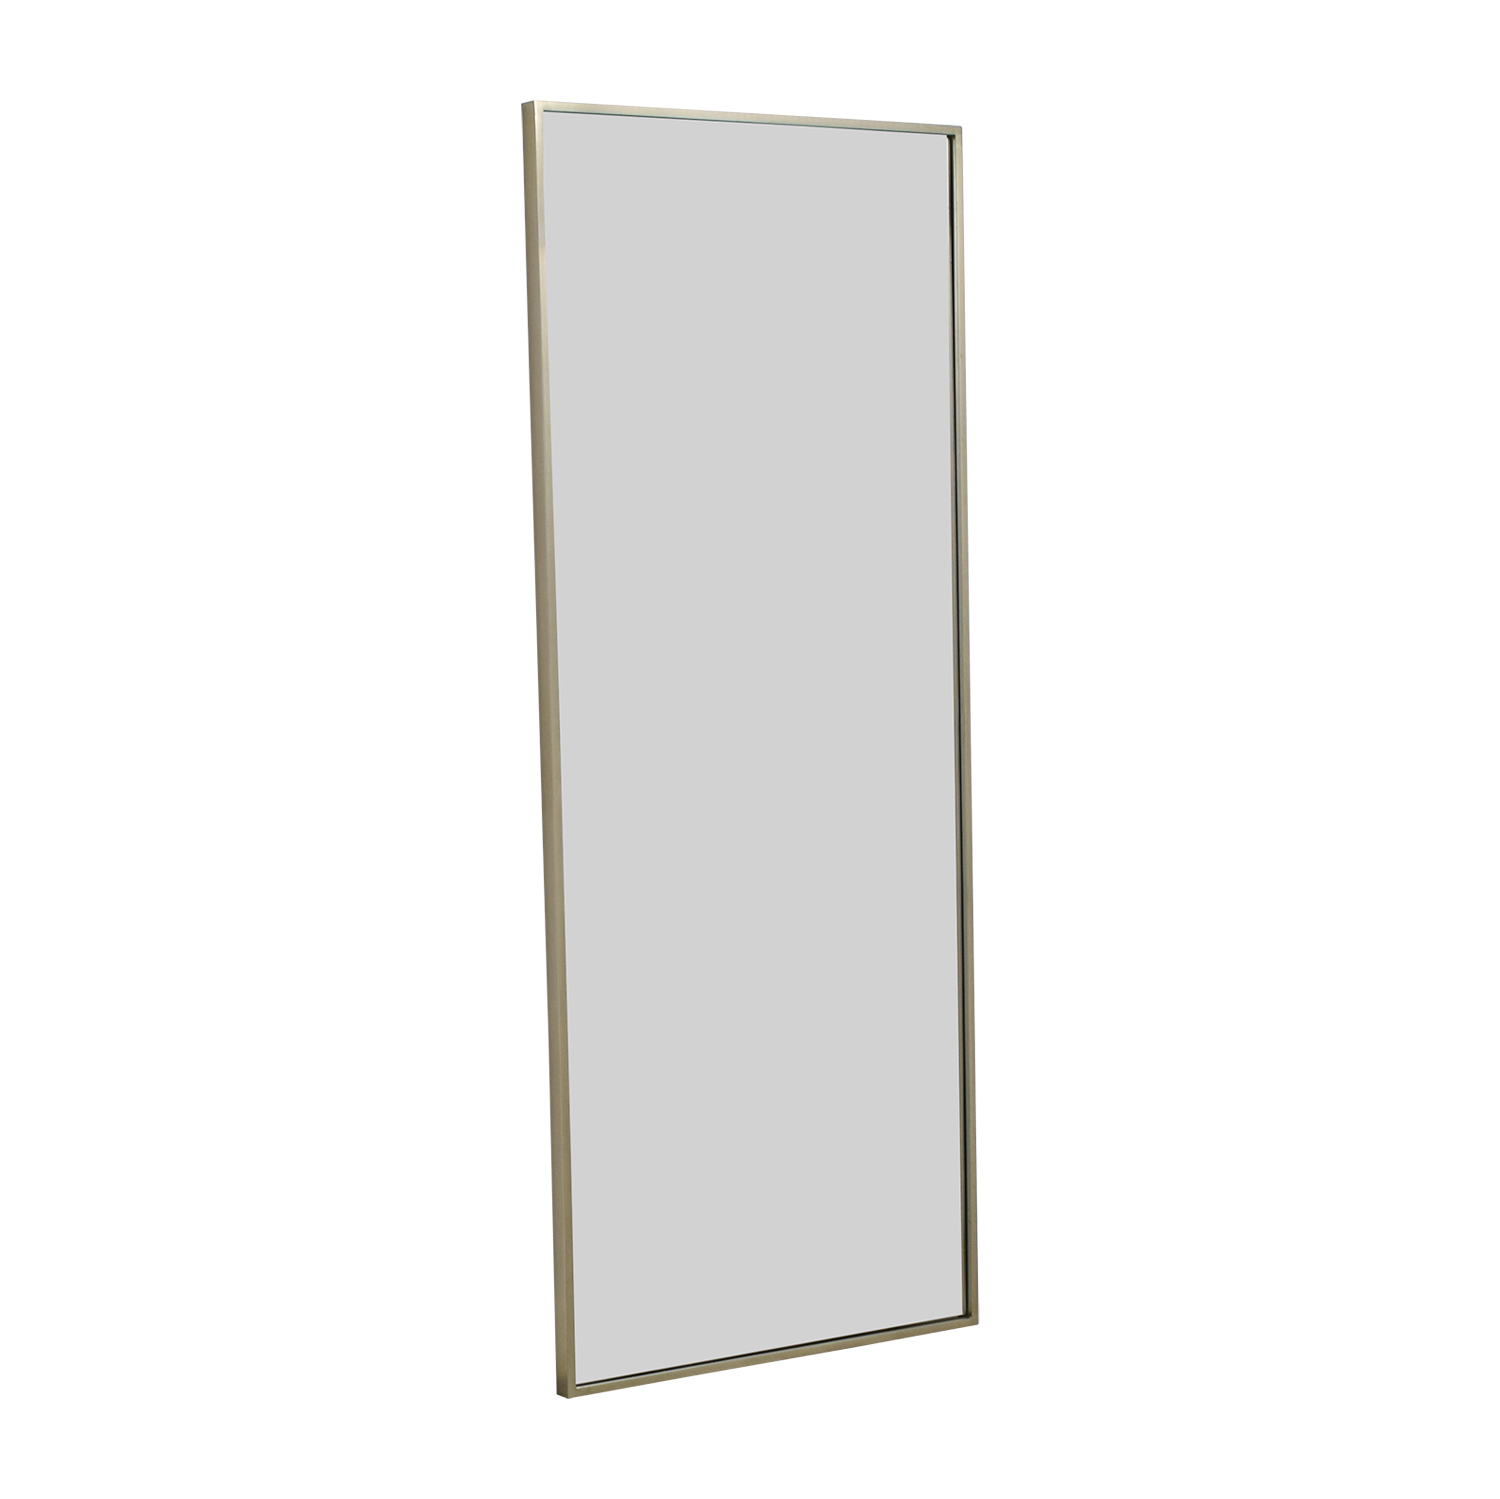 IKEA IKEA Hovet Mirror on sale